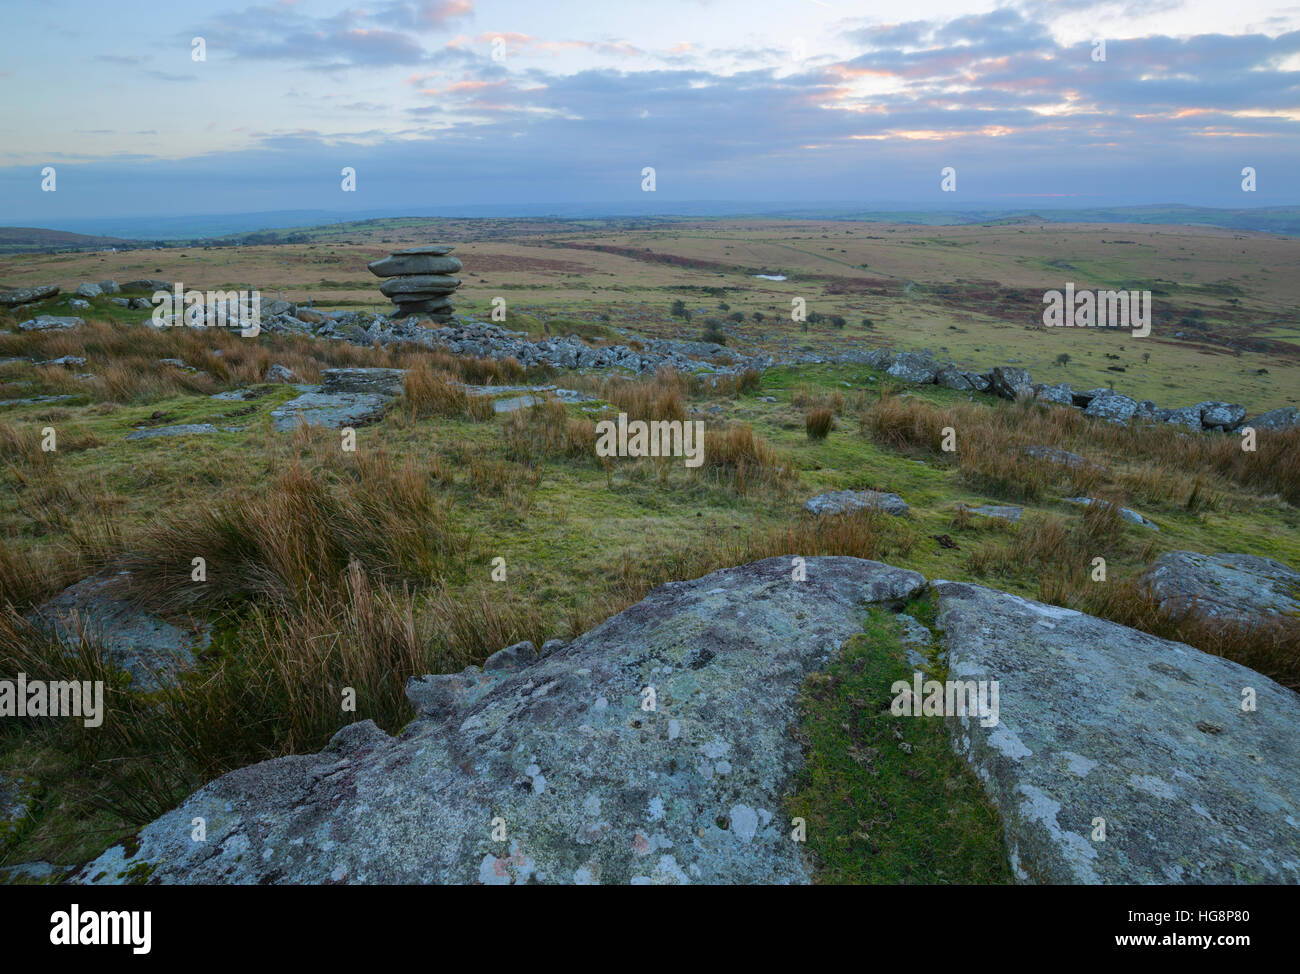 The view towards the famous Cheesewring on Stowes Hill, Bodmin Moor - Stock Image